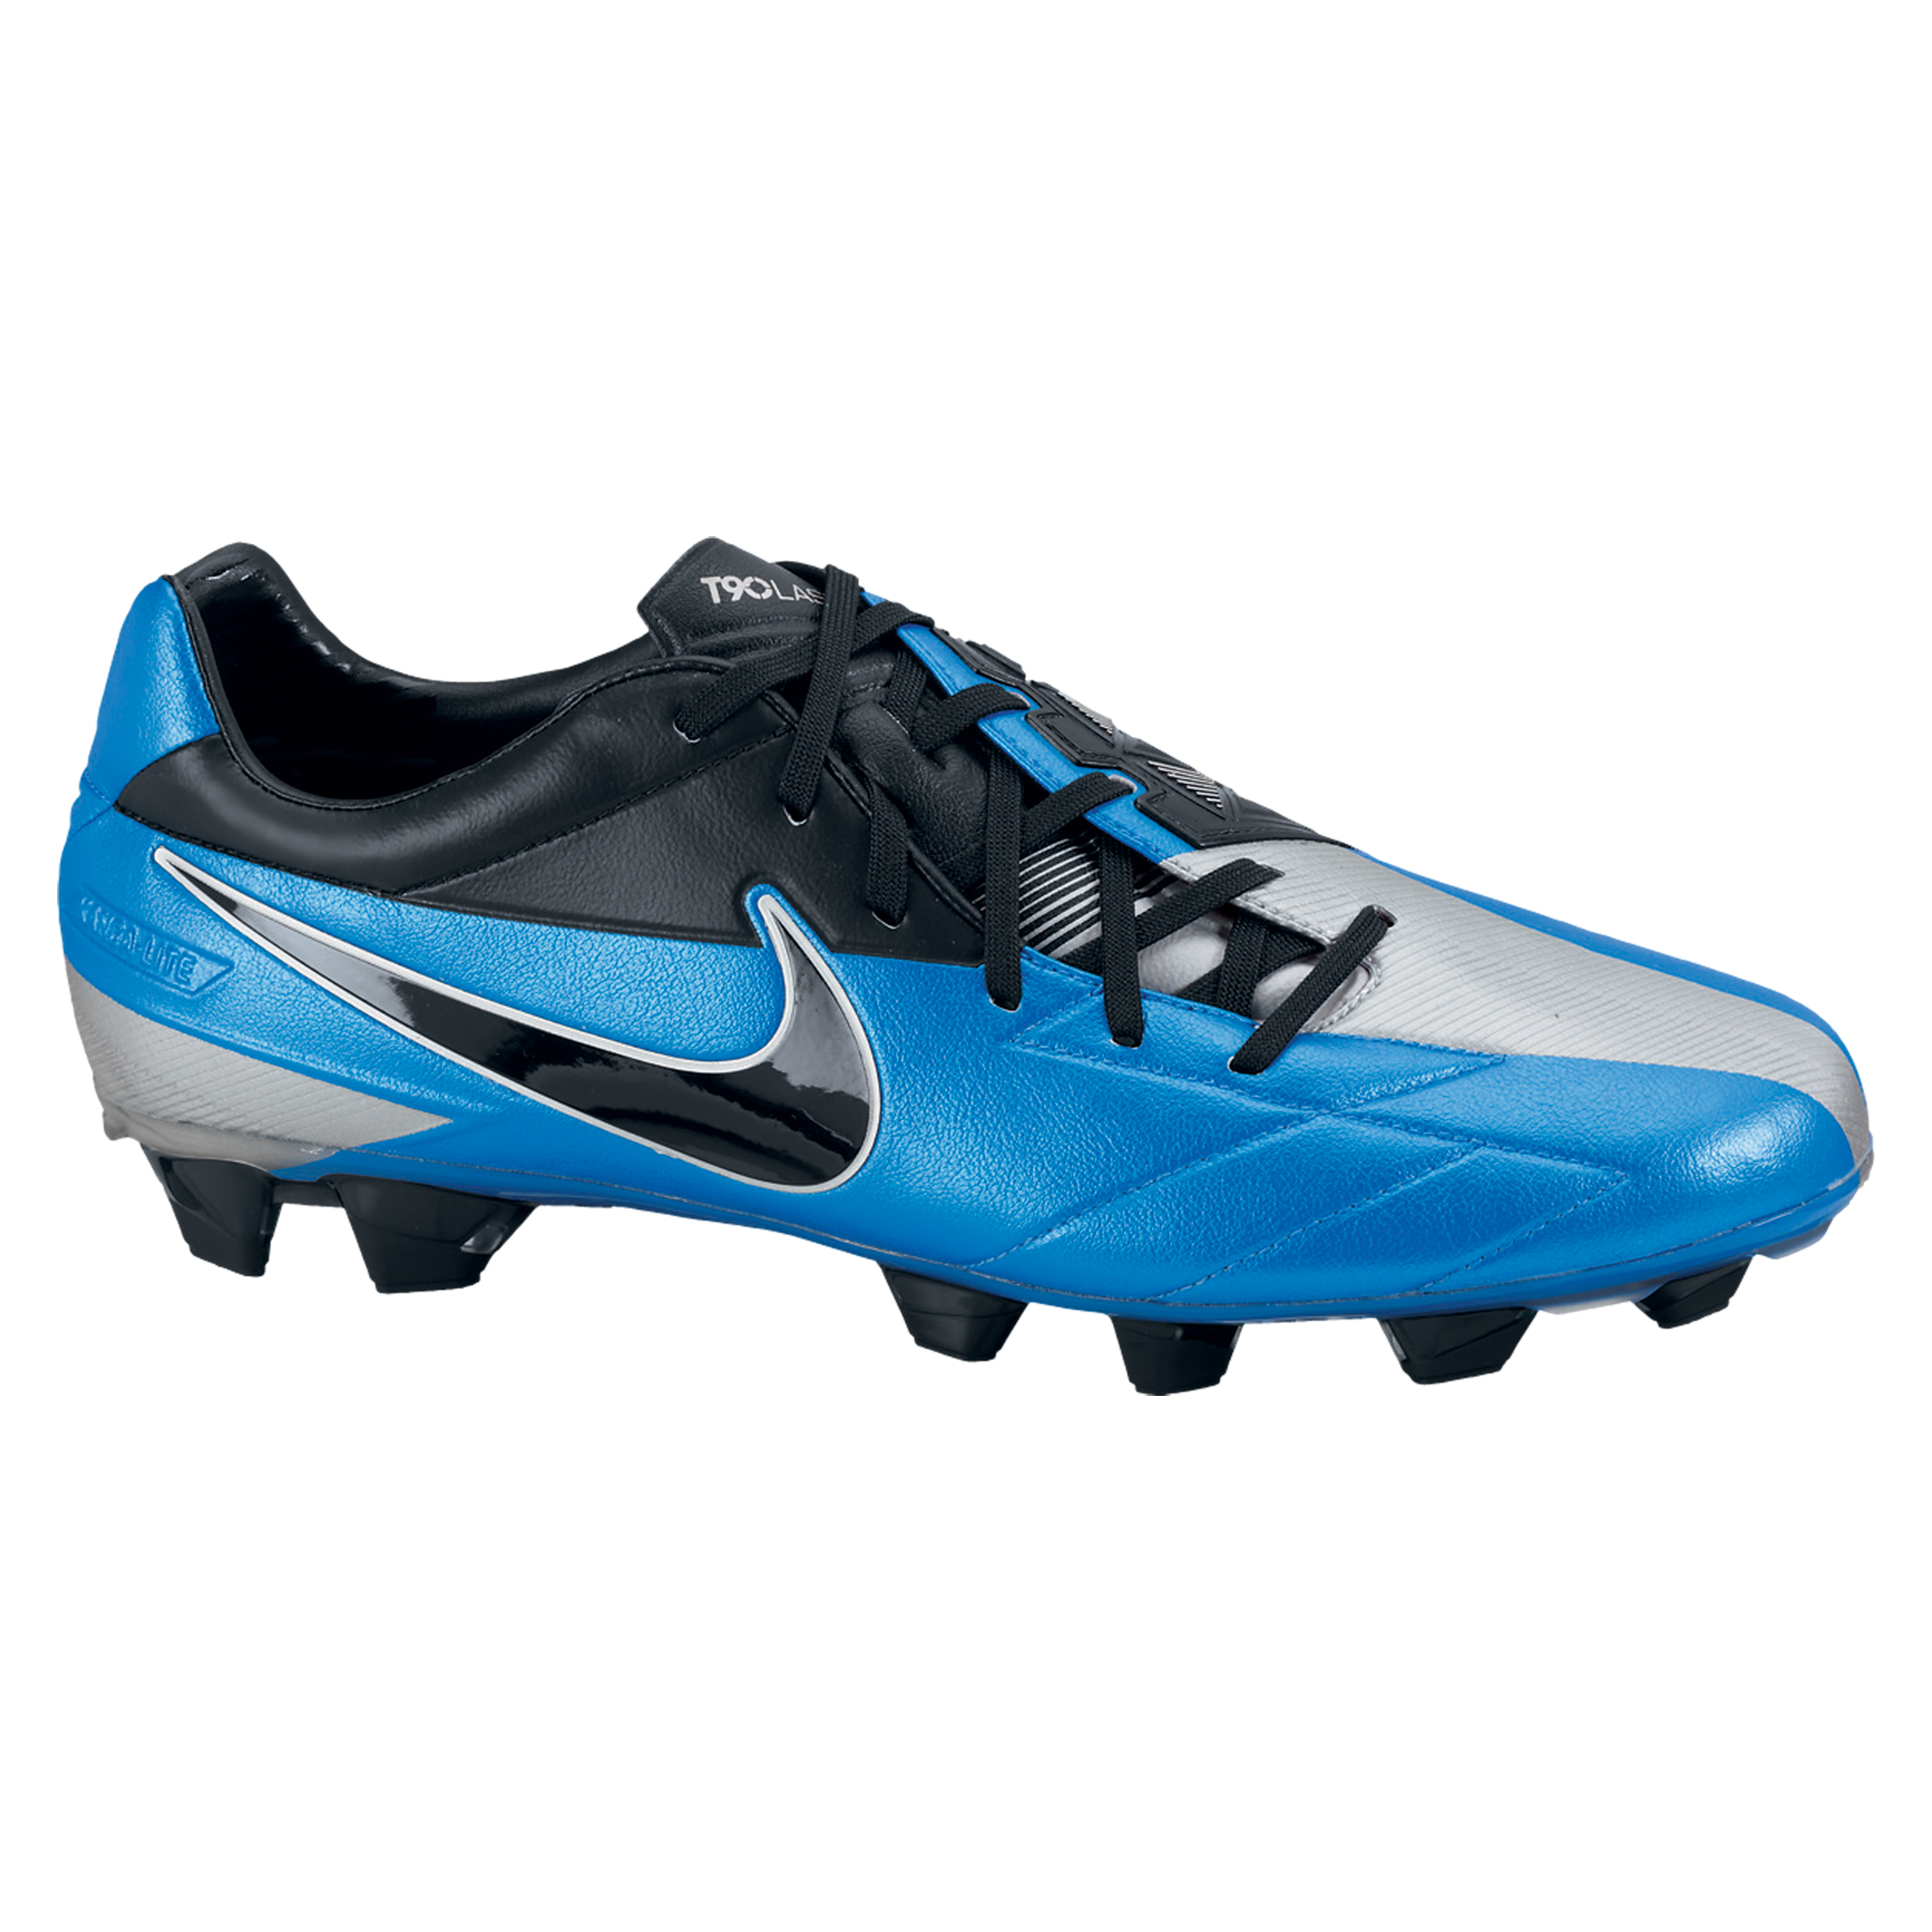 Nike T90 Laser IV KL-Firm Ground Football Boots - Soar/Black/Metallic Silver